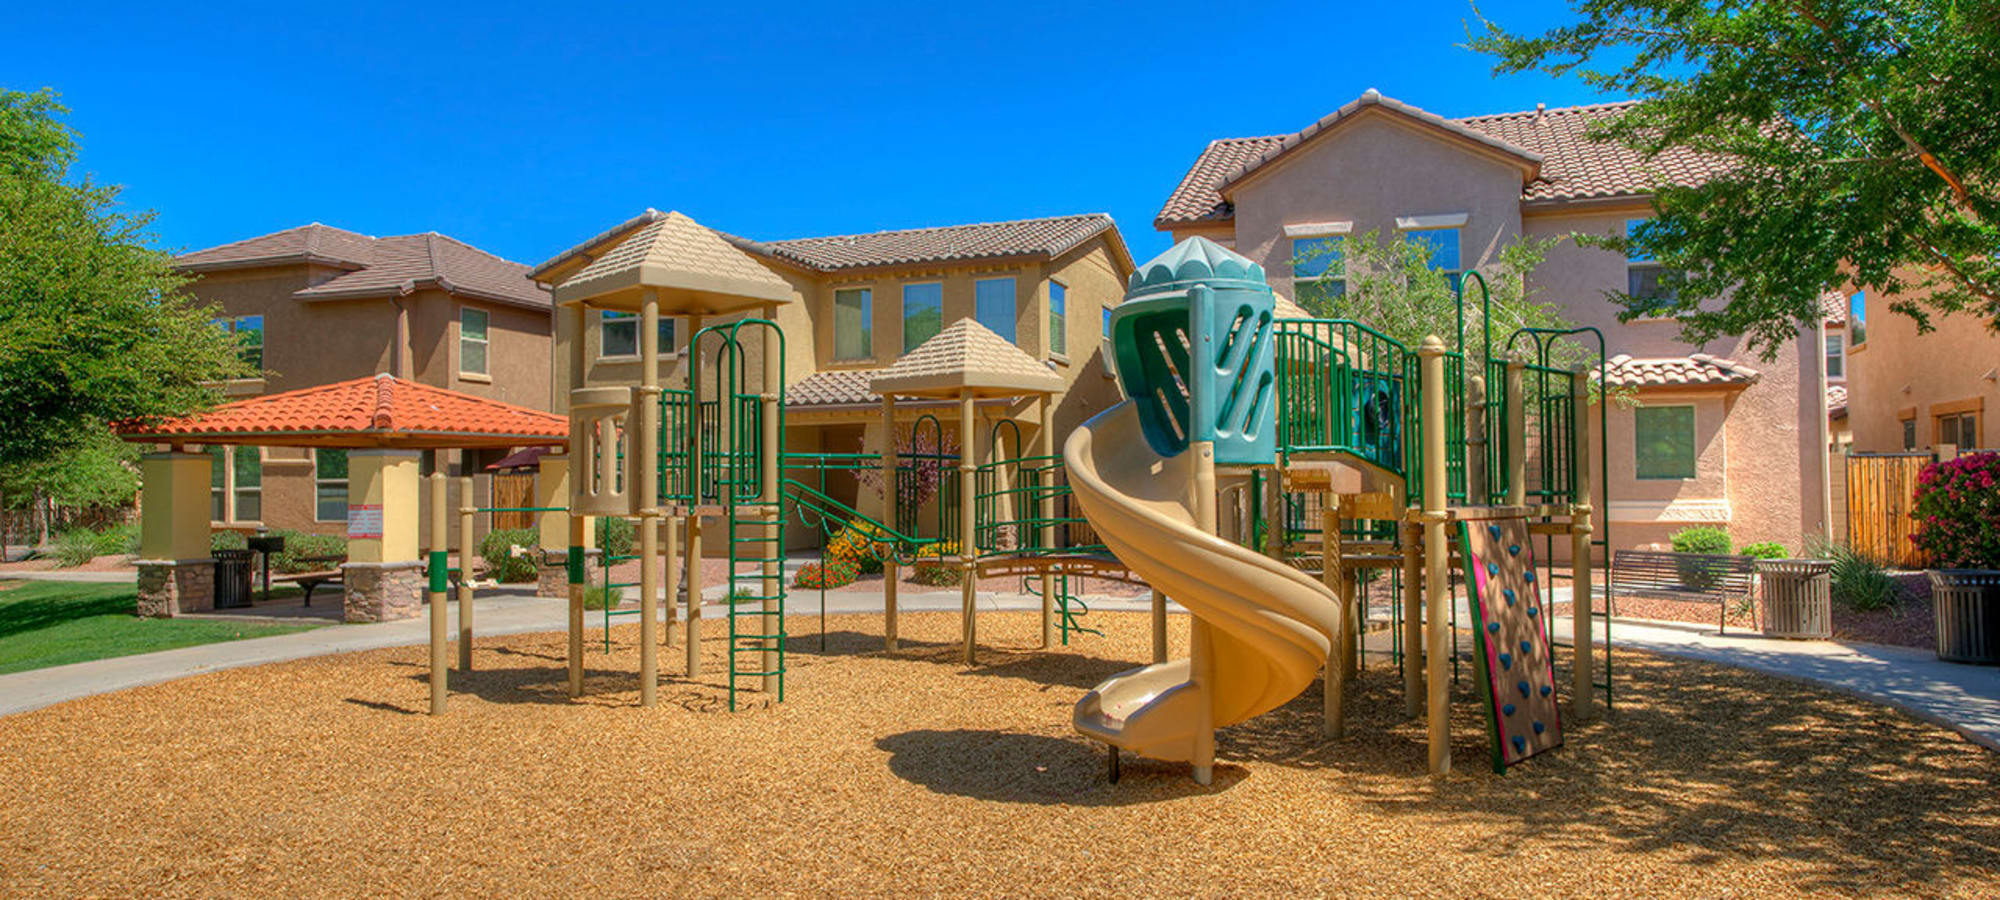 Large onsite playground at BB Living at Higley Park in Gilbert, Arizona